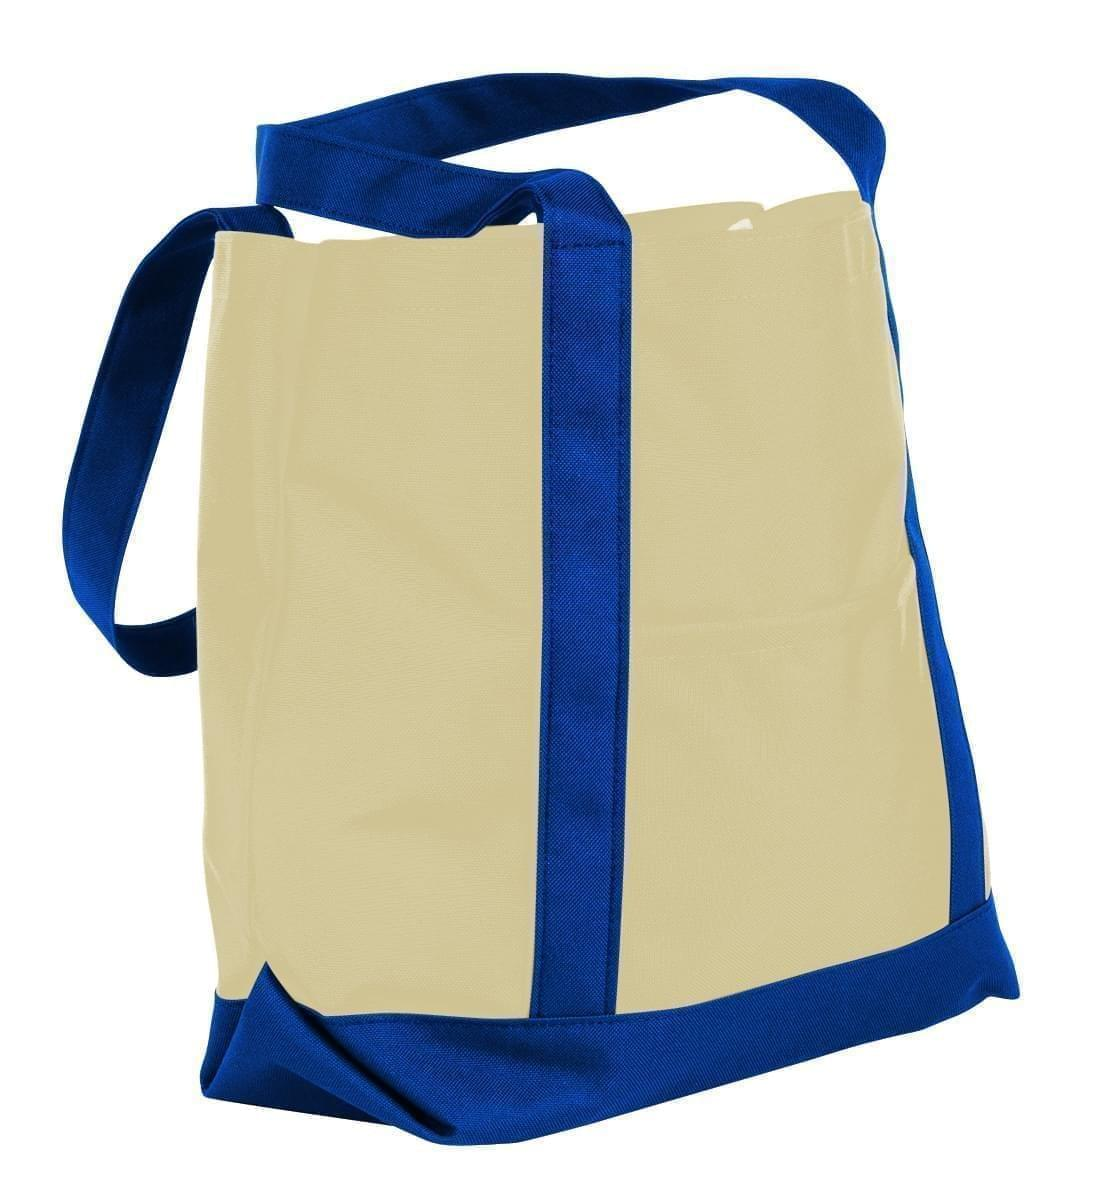 USA Made Canvas Fashion Tote Bags, Natural-Royal Blue, XAACL1UAKM